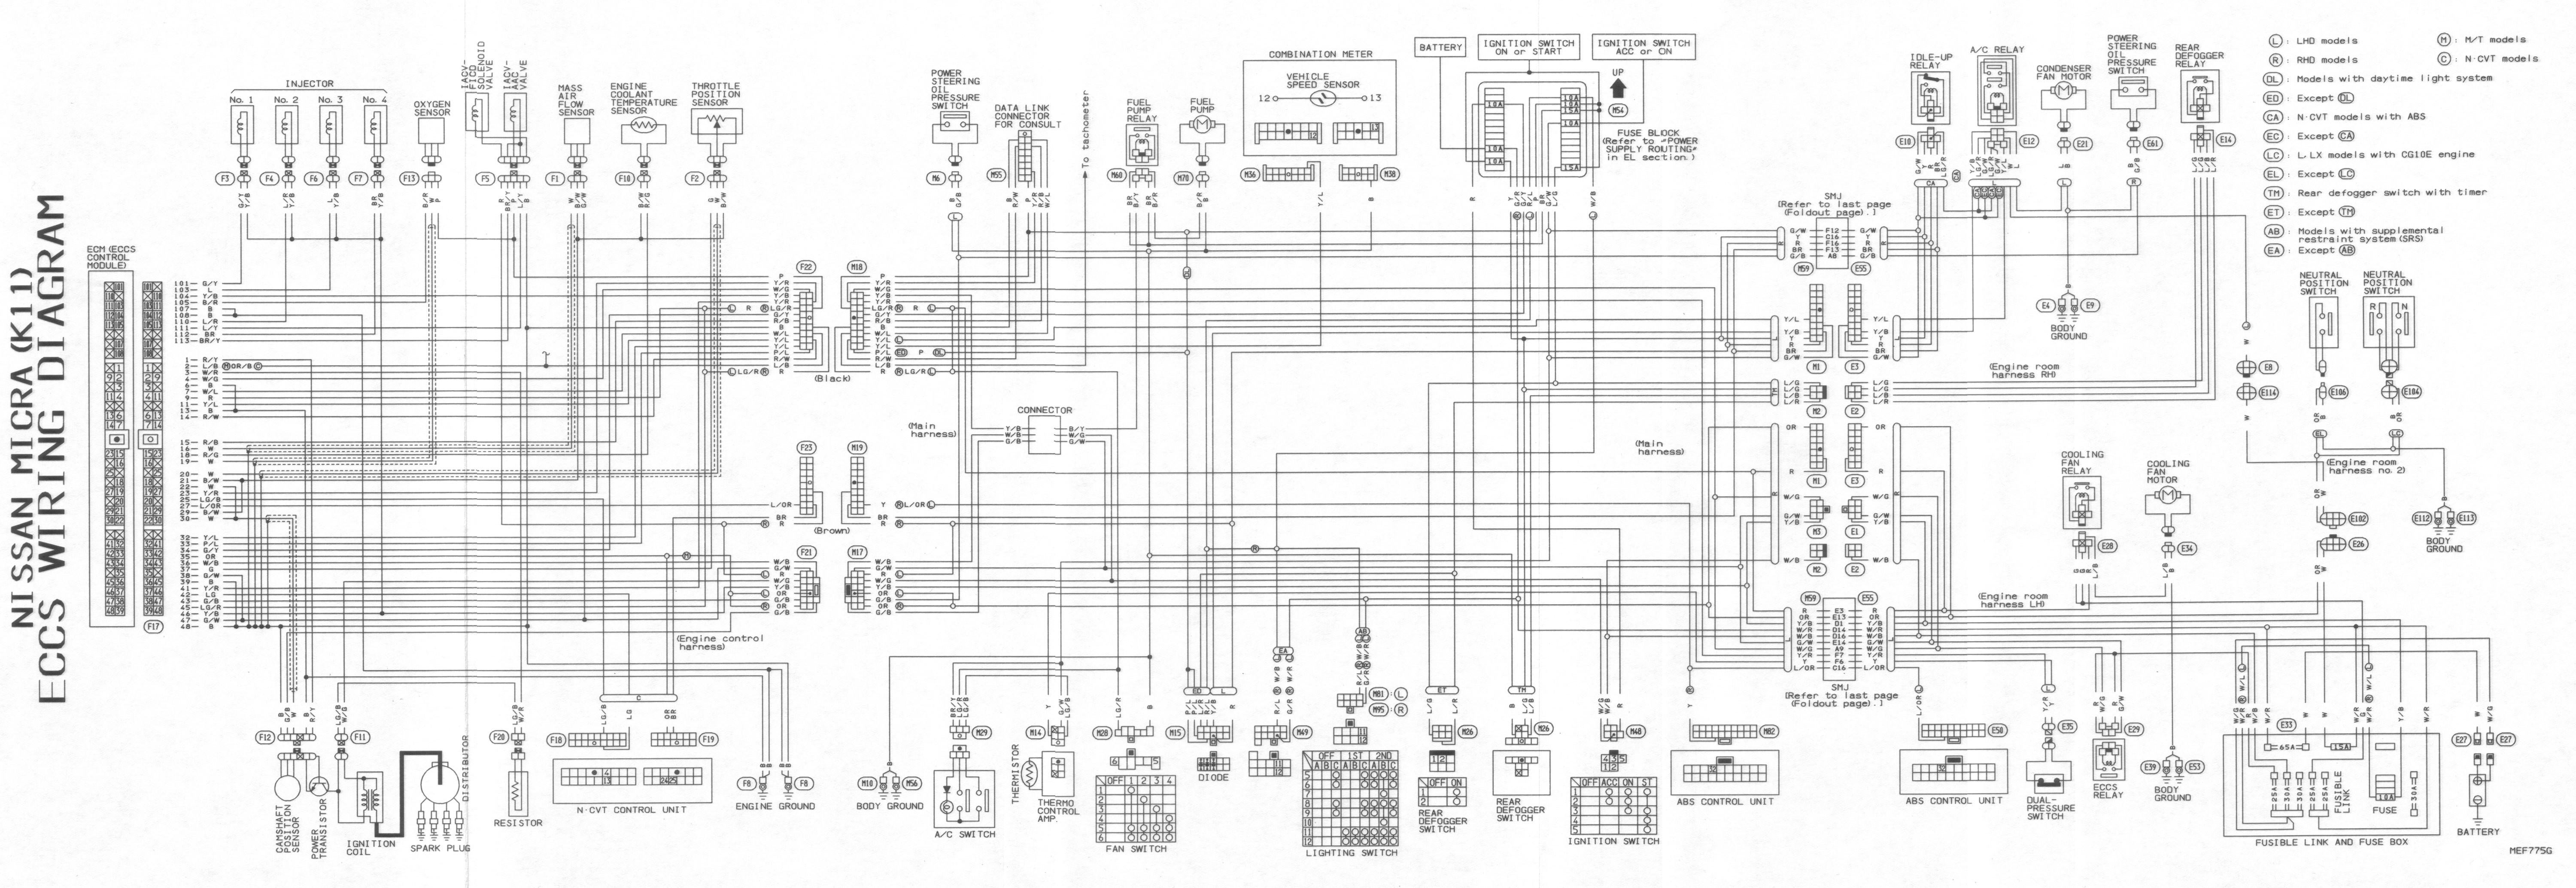 Nissan Micra K40 Wiring Diagram Free   collude paveme All Wiring ...